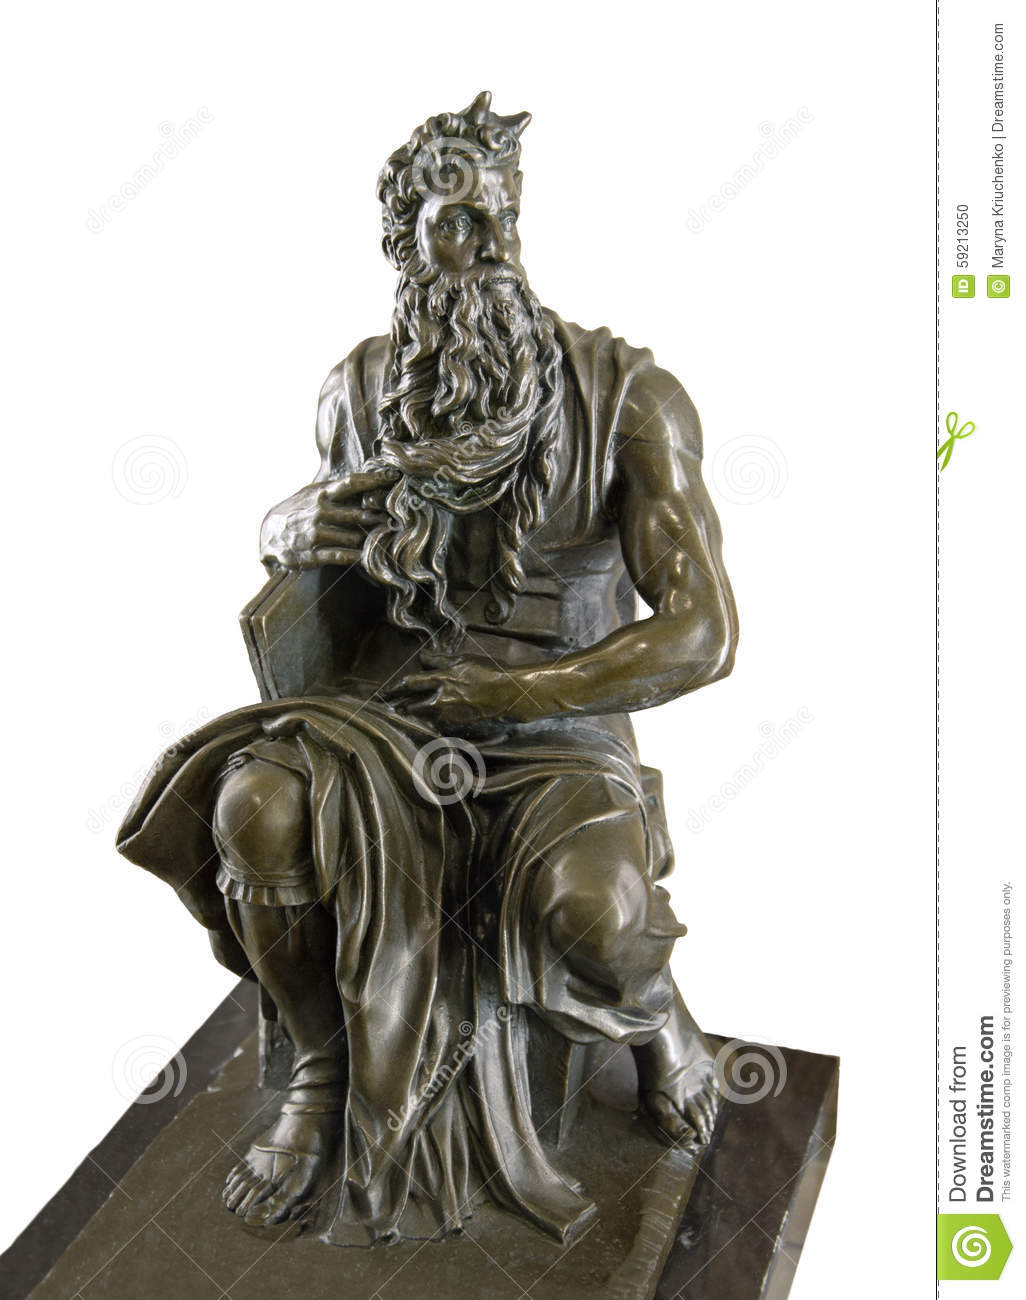 MICHELANGELO Sculptor Painter Architect Movie HD free download 720p